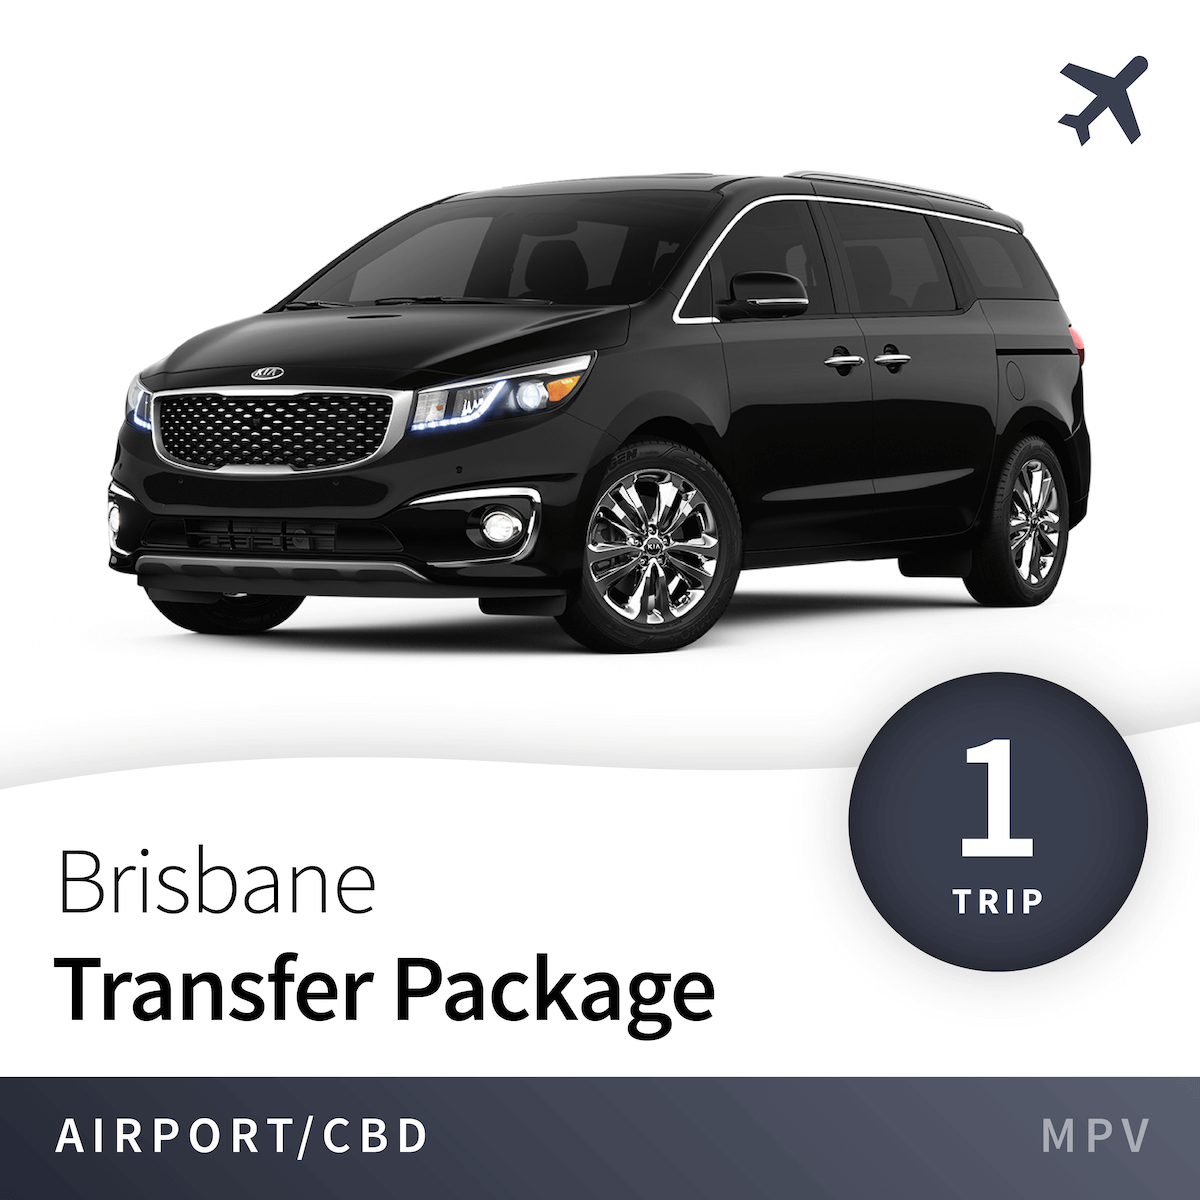 Brisbane Airport Transfer Package - MPV (1 Trip) 2